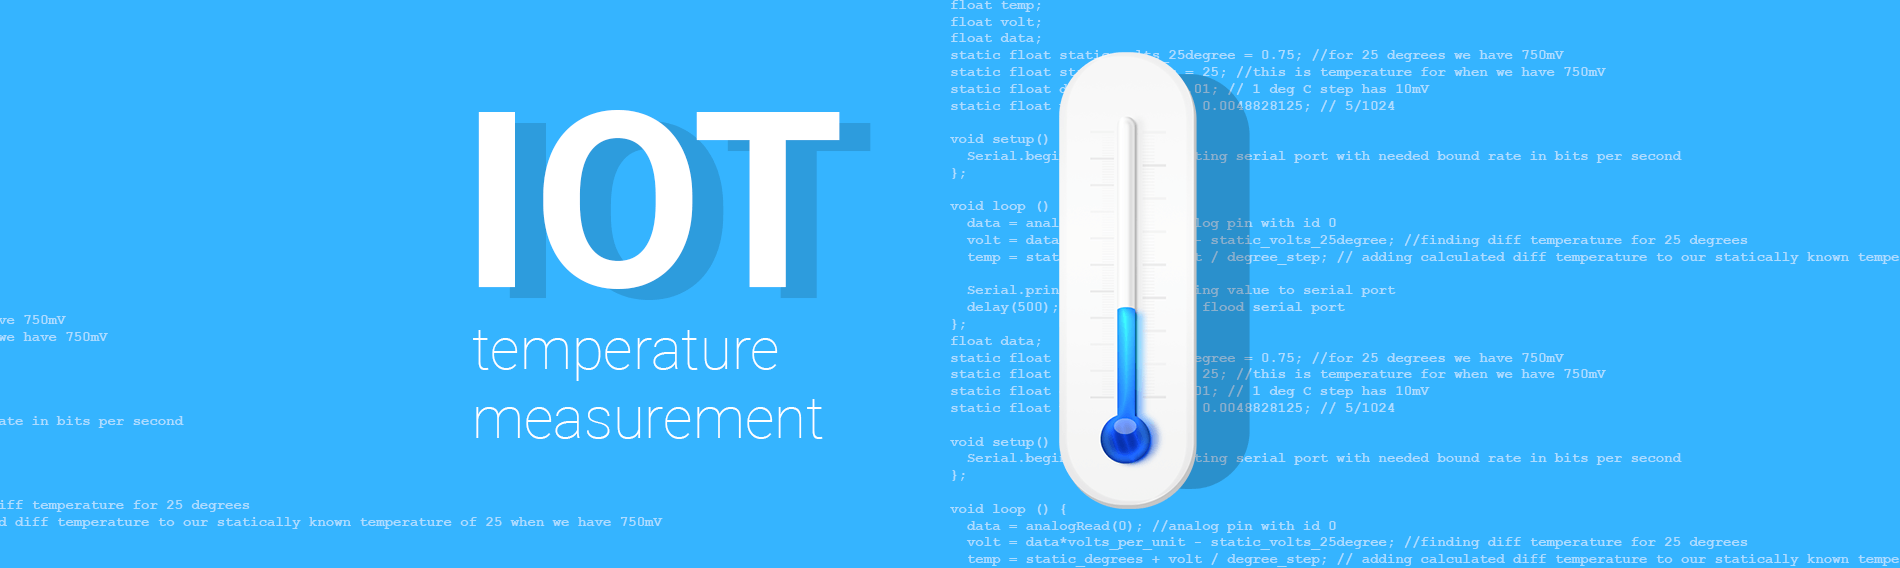 IoT Lecture #1: Arduino setup for temperature measurement and monitoring